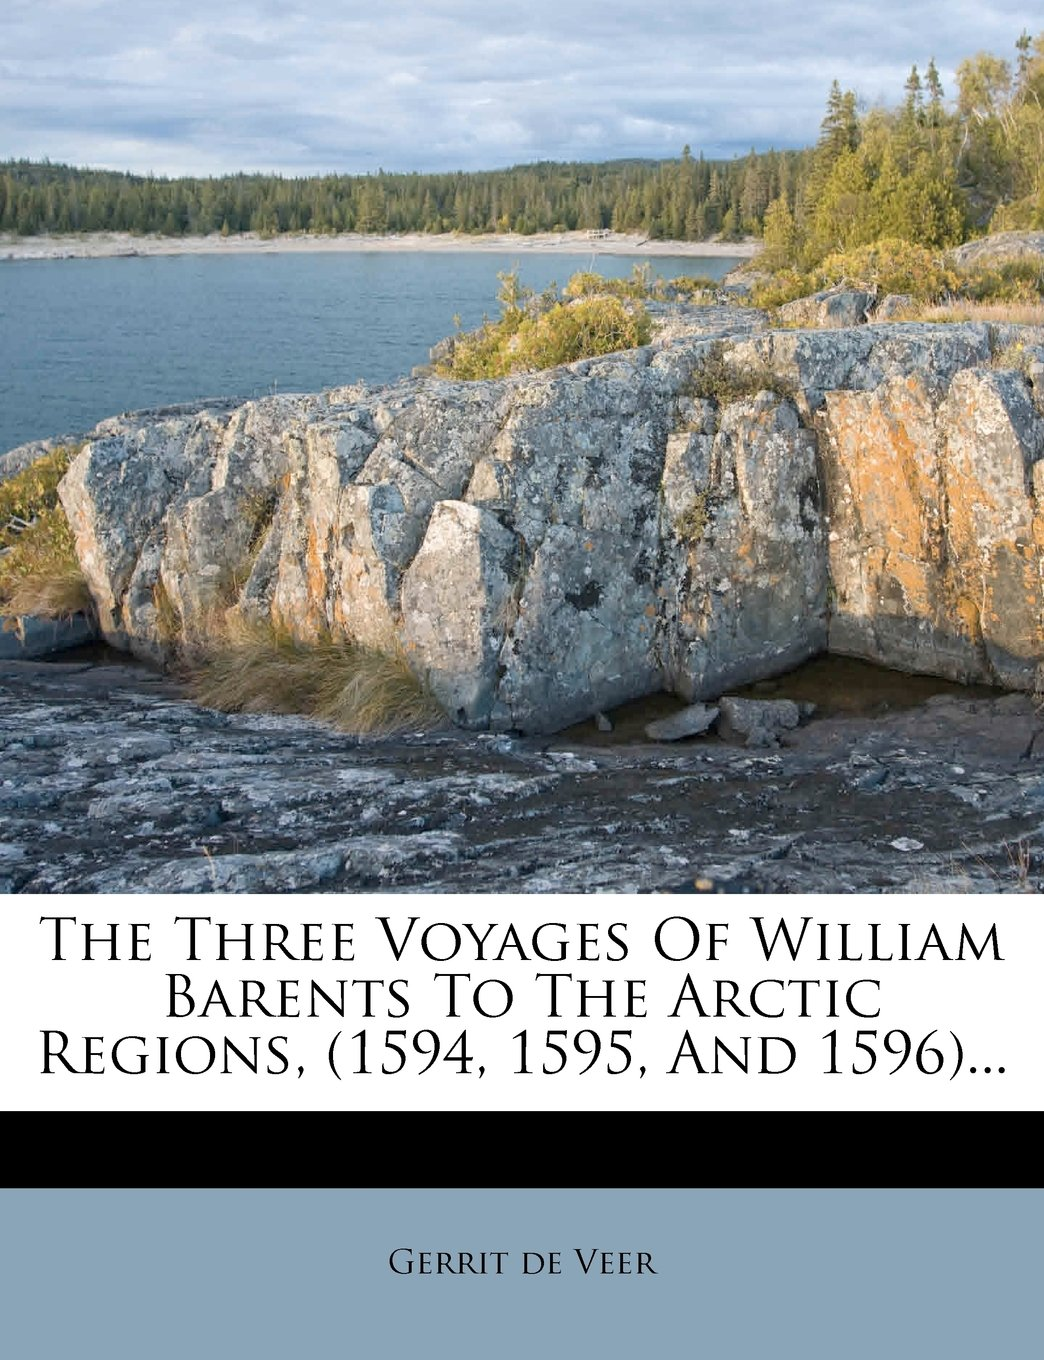 The Three Voyages Of William Barents To The Arctic Regions, (1594, 1595, And 1596)... pdf